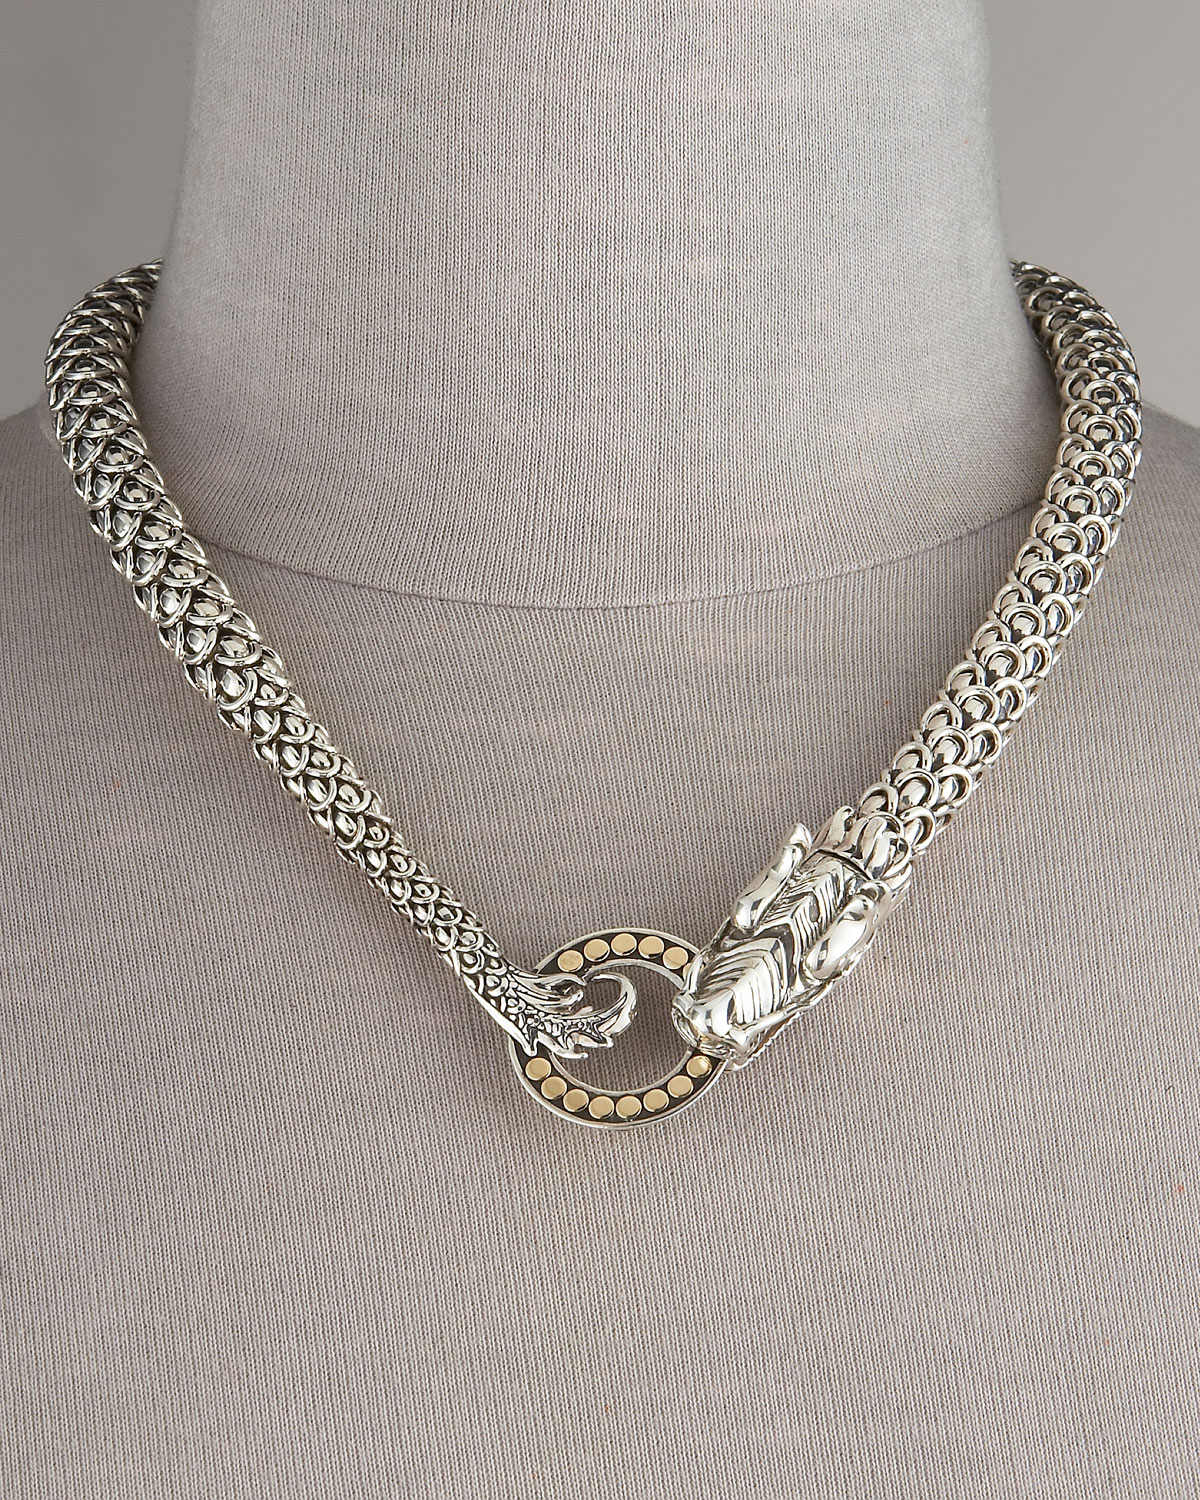 Lyst john hardy naga dragon necklace in metallic for John hardy jewelry factory bali